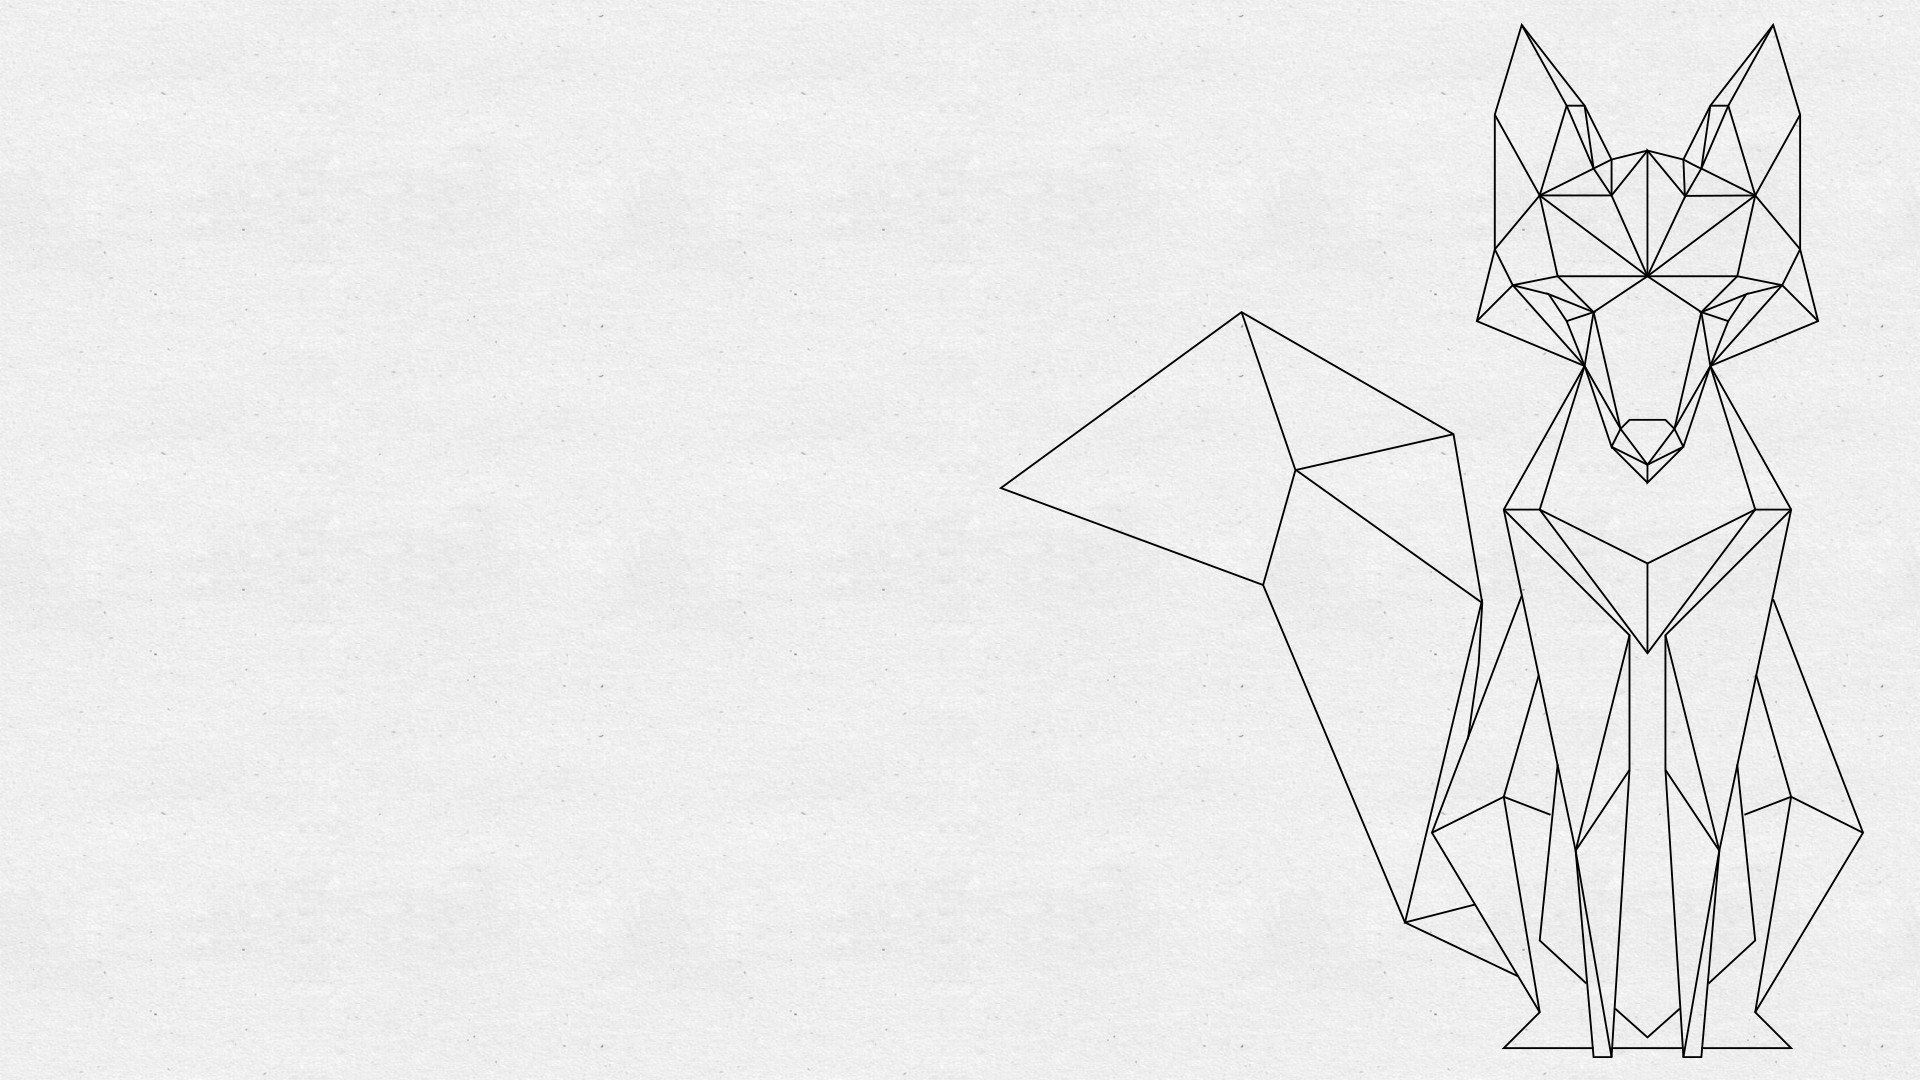 1920x1080 Geometric Fox [1920x1080] More sizes in comments : wallpapers